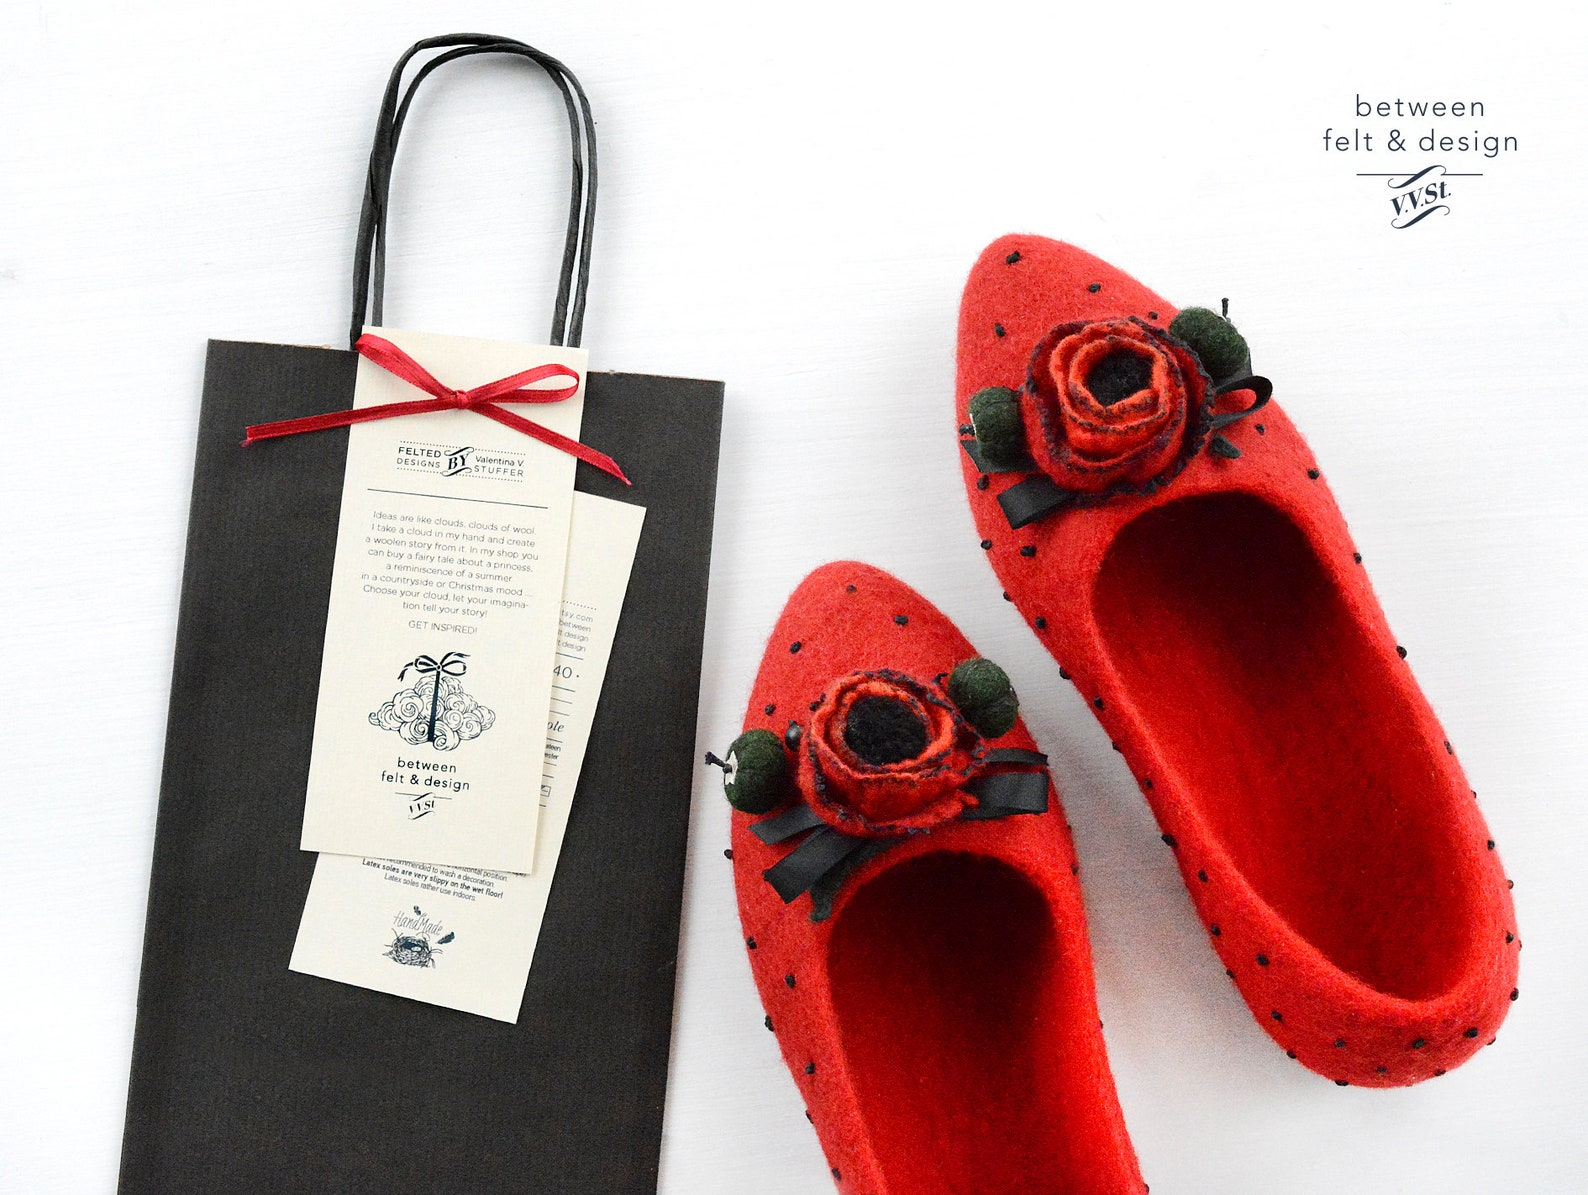 felted slippers pointy flats felted ballet flats red poppy bridesmaid gift stylish slippers for-girlfriend clogs home woman shoe